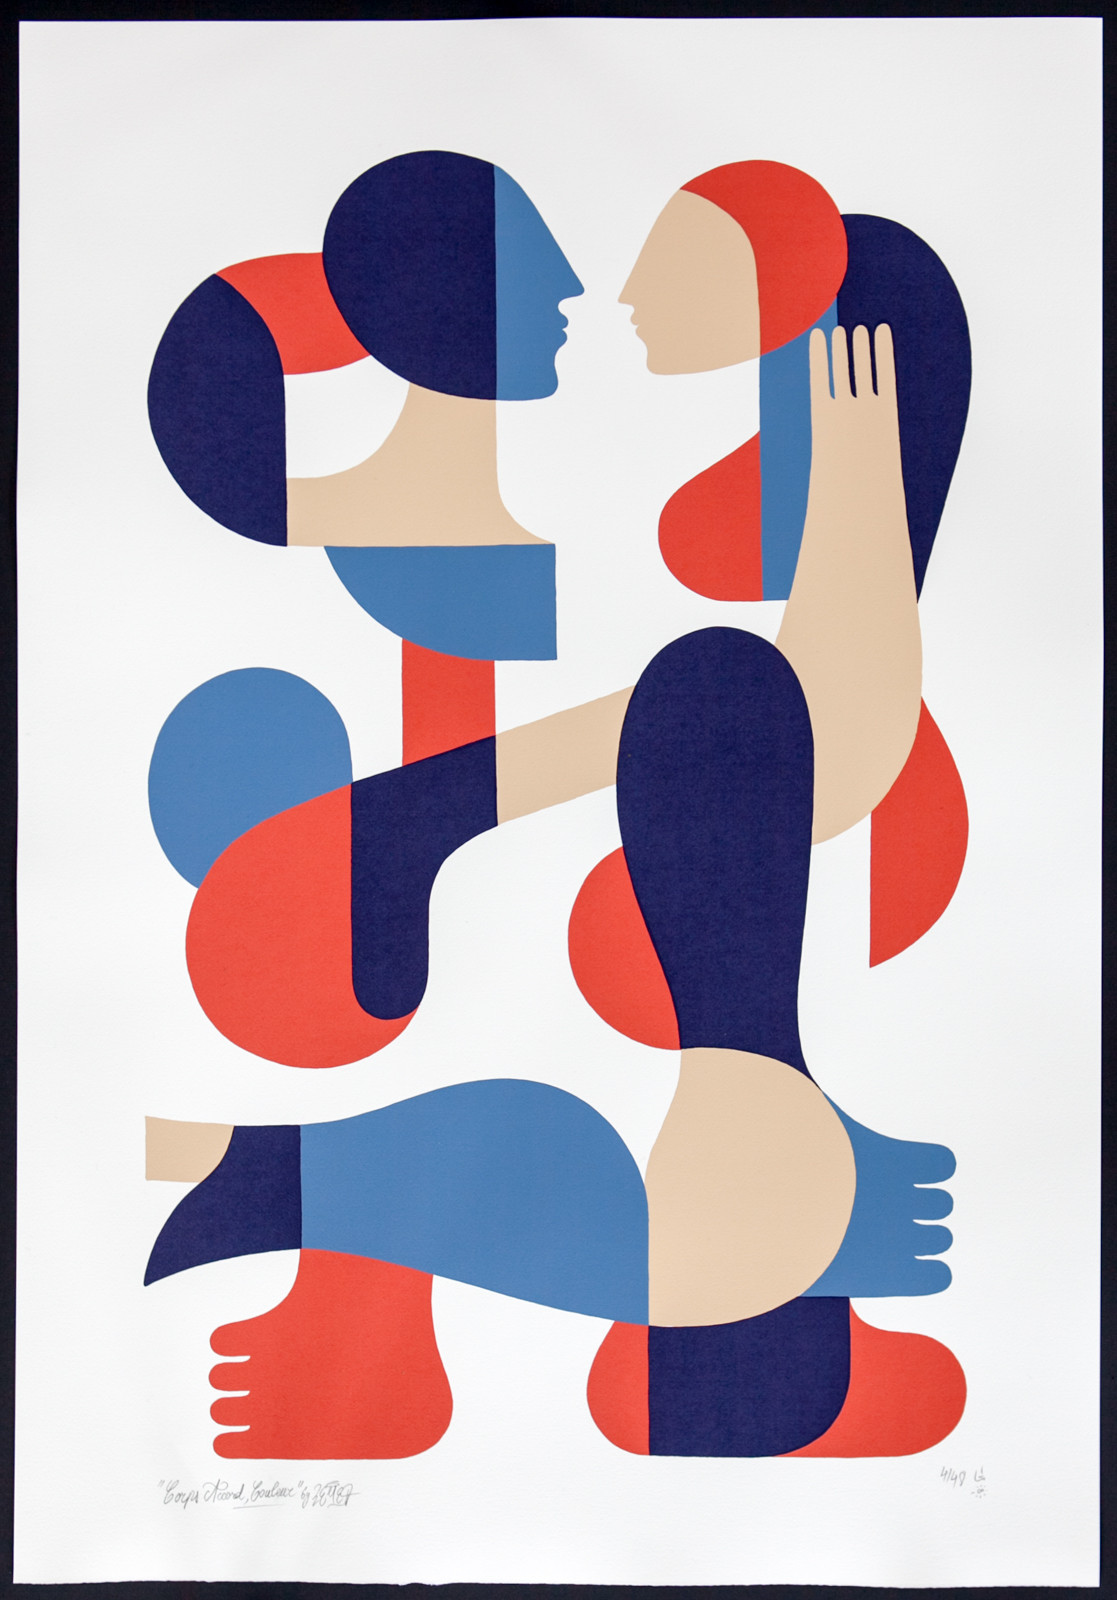 """Corps Accord, Couleurs"" by Remed.  66 x 96cm 4-color Screenprint.  Ed of 48 S/N.  €320 ($351)"